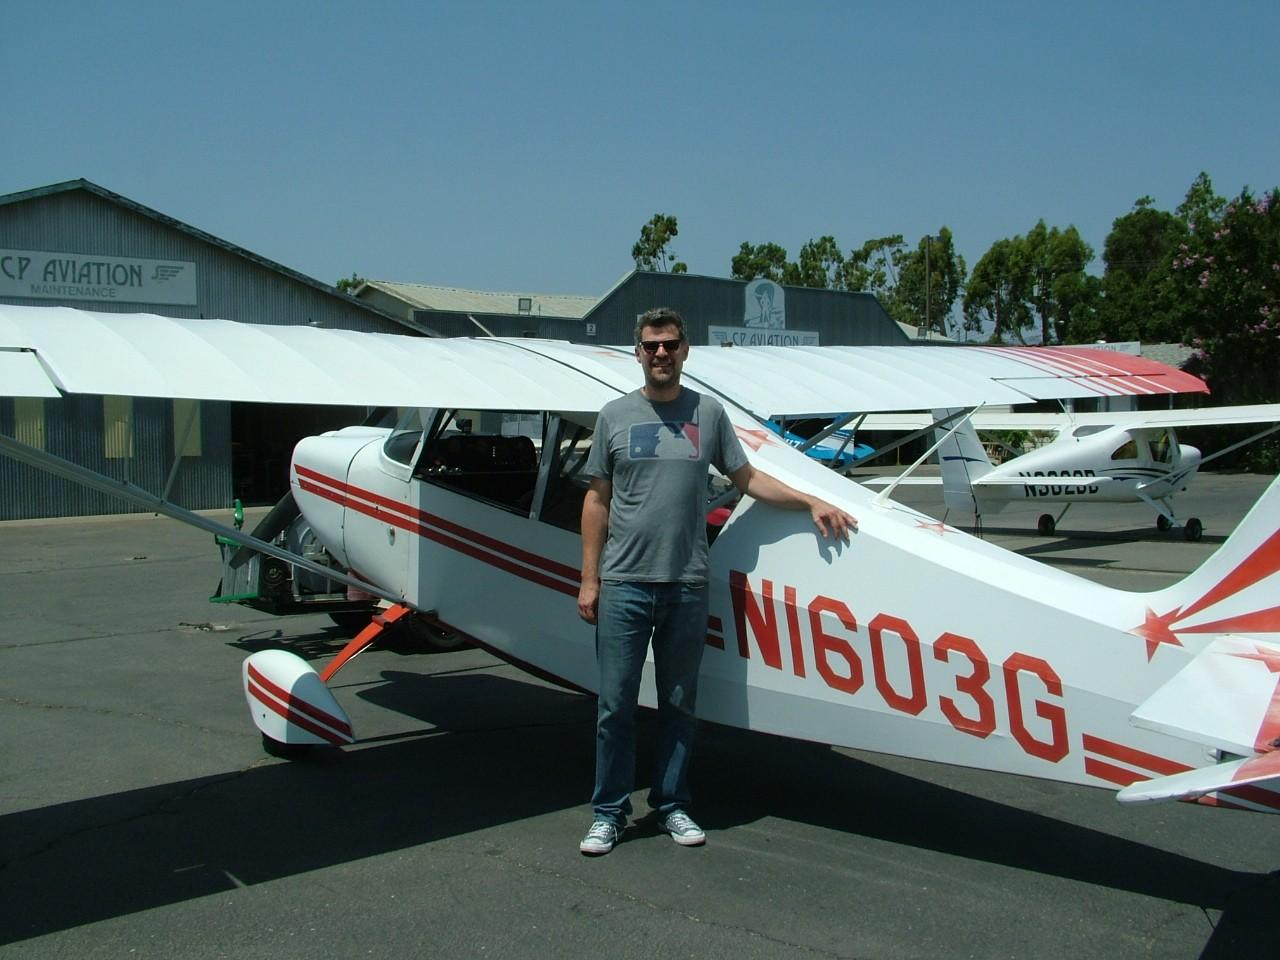 Tailwheel Endorsement - Mon Agranat